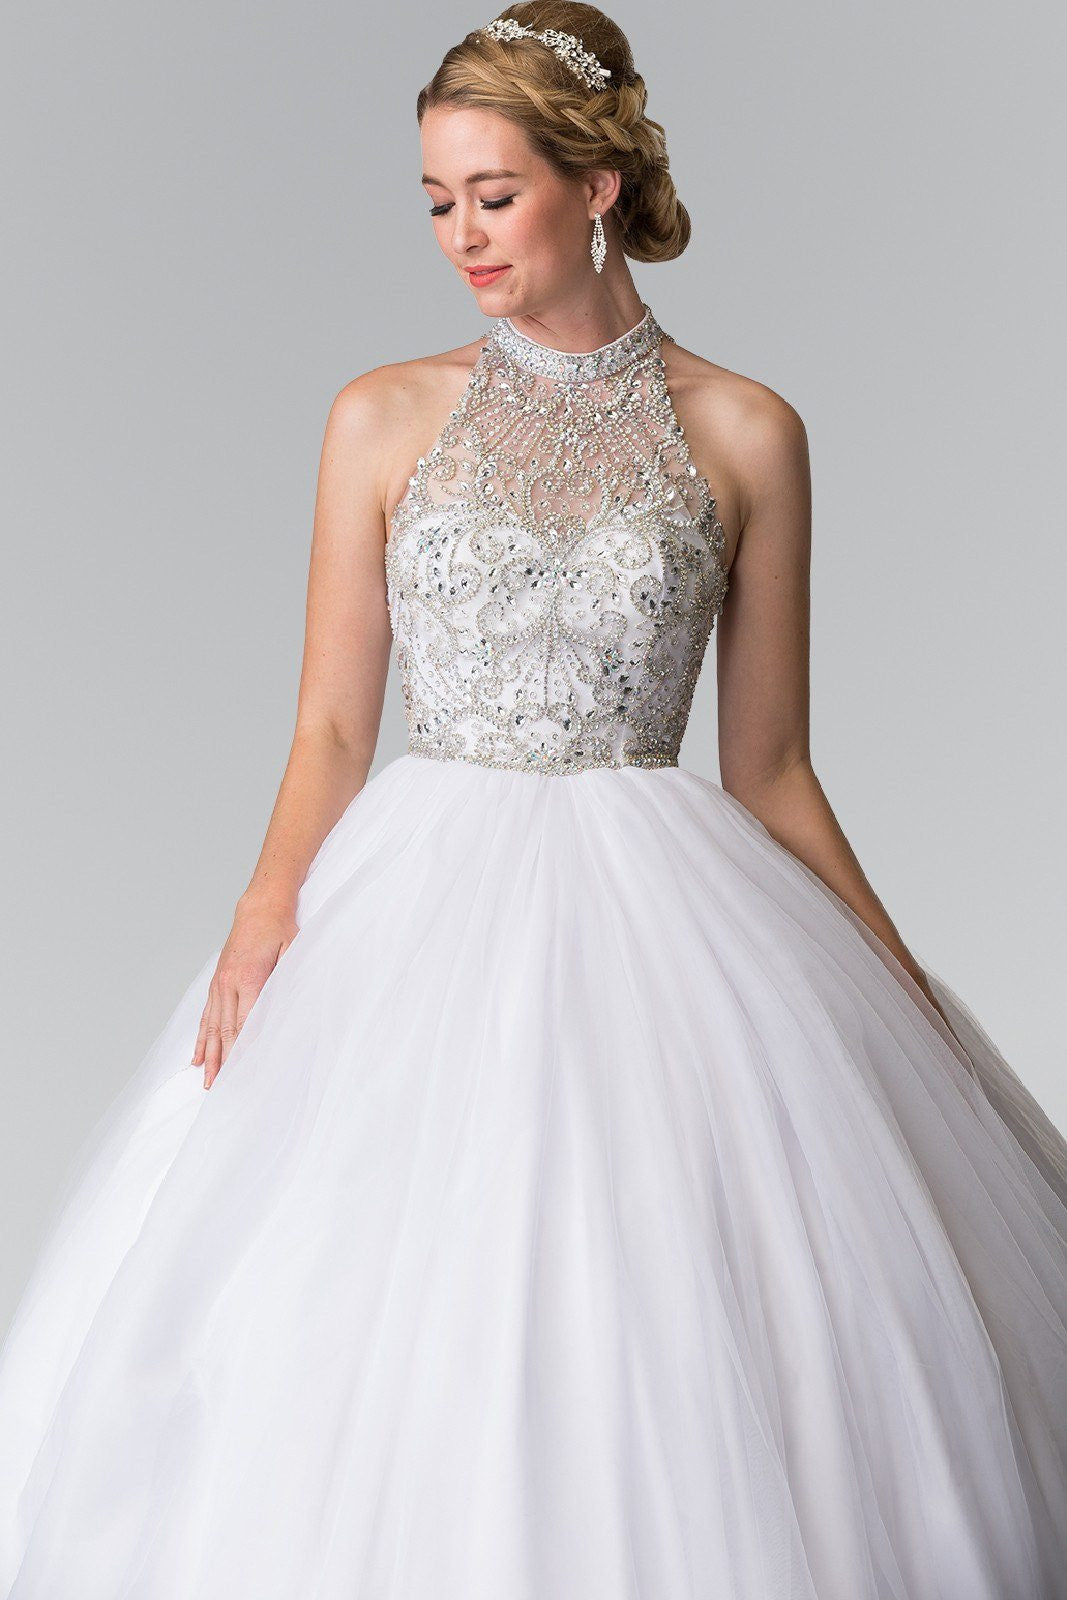 Affordable Wedding Gown & Quinceanera Dress gl2206 - CLOSEOUT ...